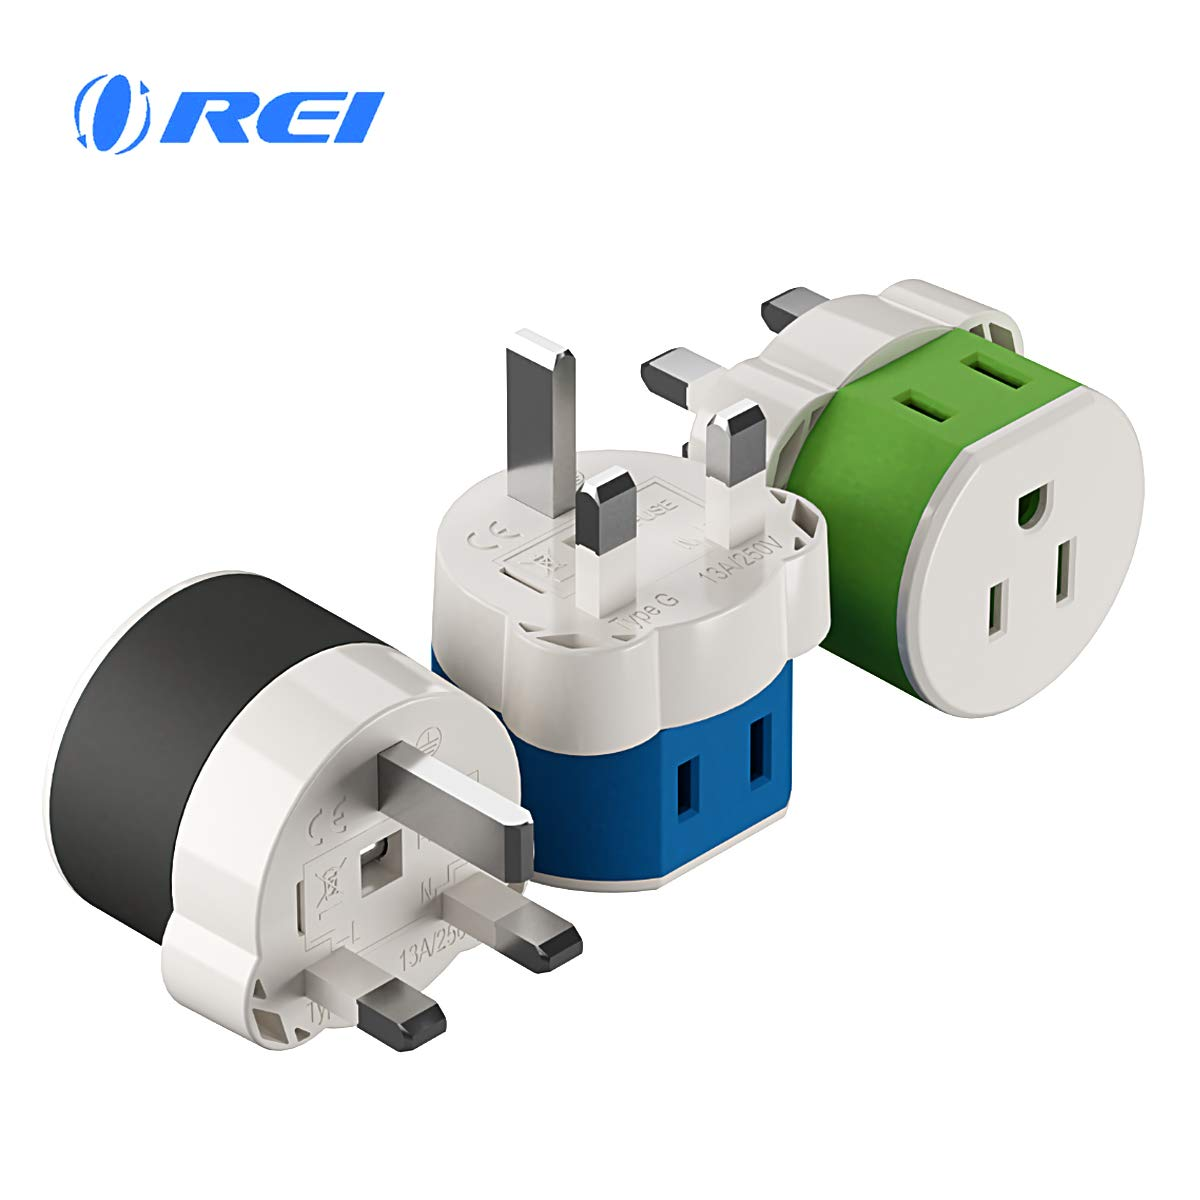 UK, Ireland, Dubai Power Plug Adapter by OREI with 2 USA Inputs - Travel 3 Pack - Type G (US-7) Fuse Protected Safe Grounded Use with Cell Phones, Laptop, Camera Chargers, CPAP, and More